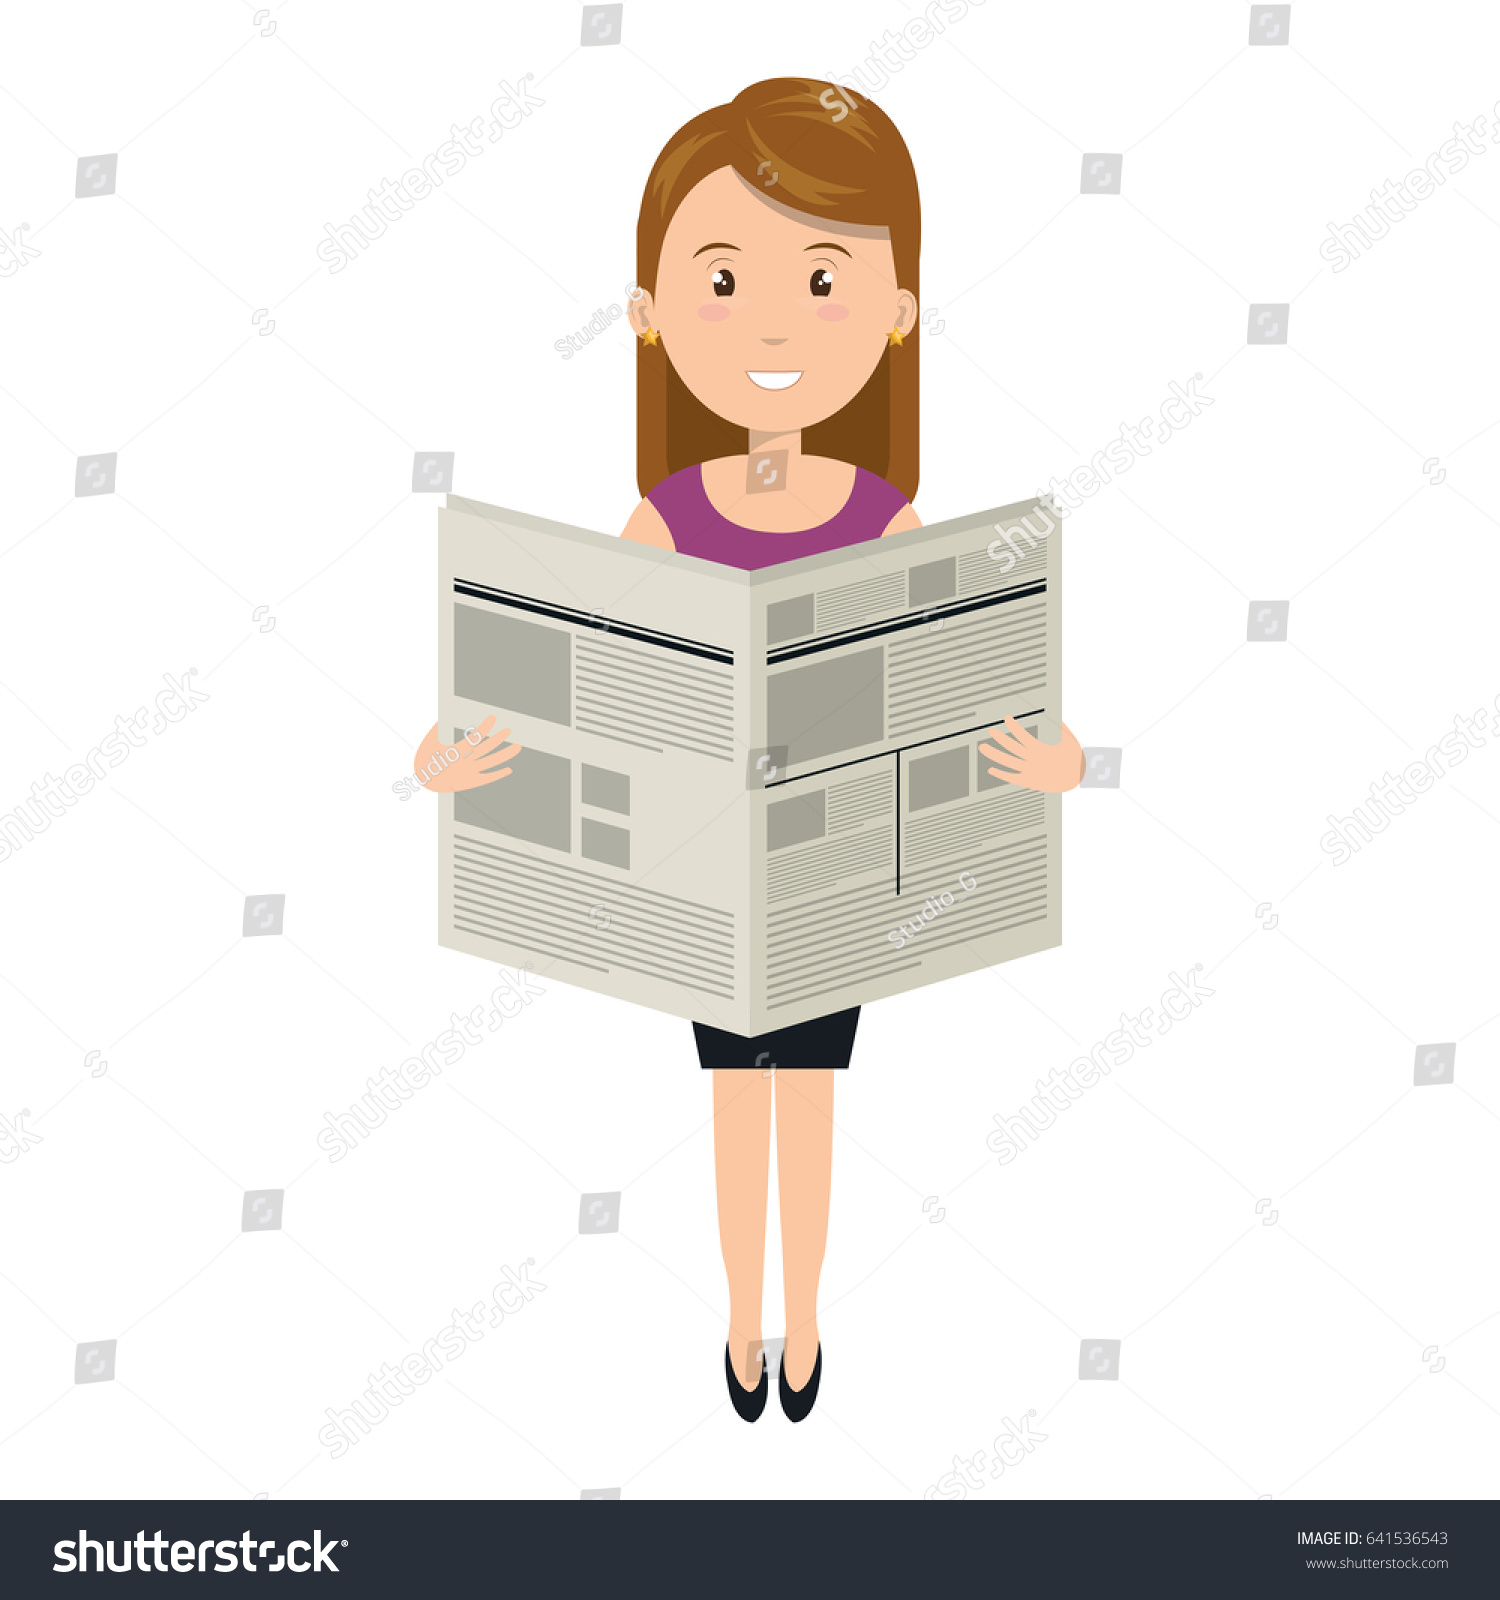 young woman reading newspaper avatar character stock vector (royalty